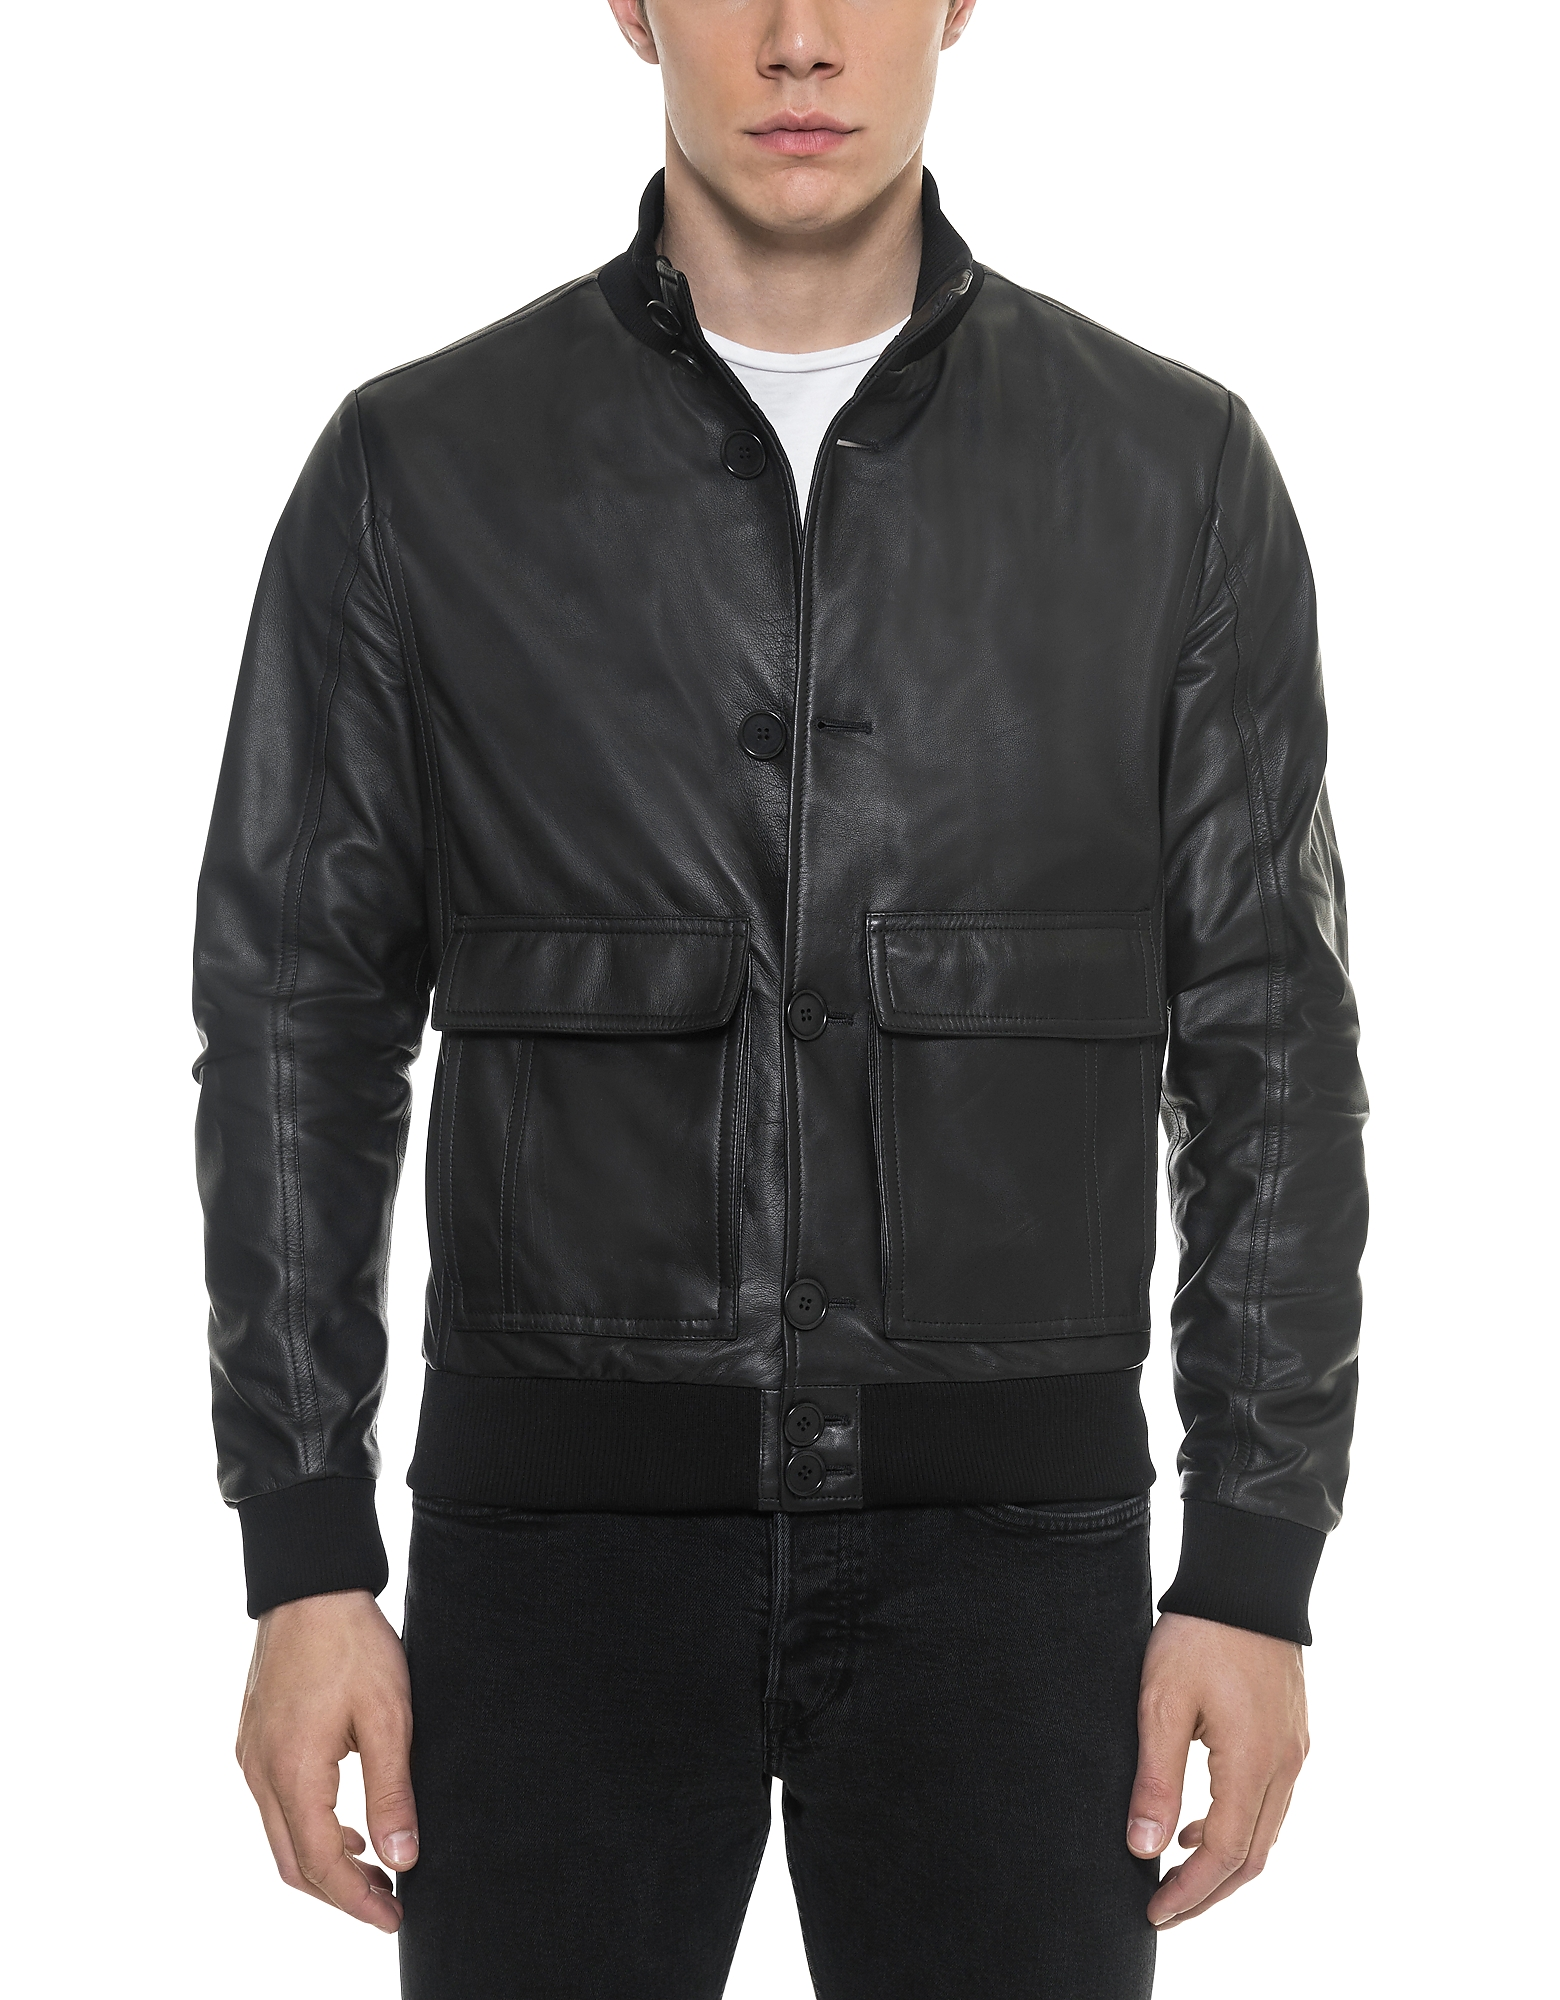 Image of Forzieri Designer Leather Jackets, Black Leather Men's Bomber Jacket